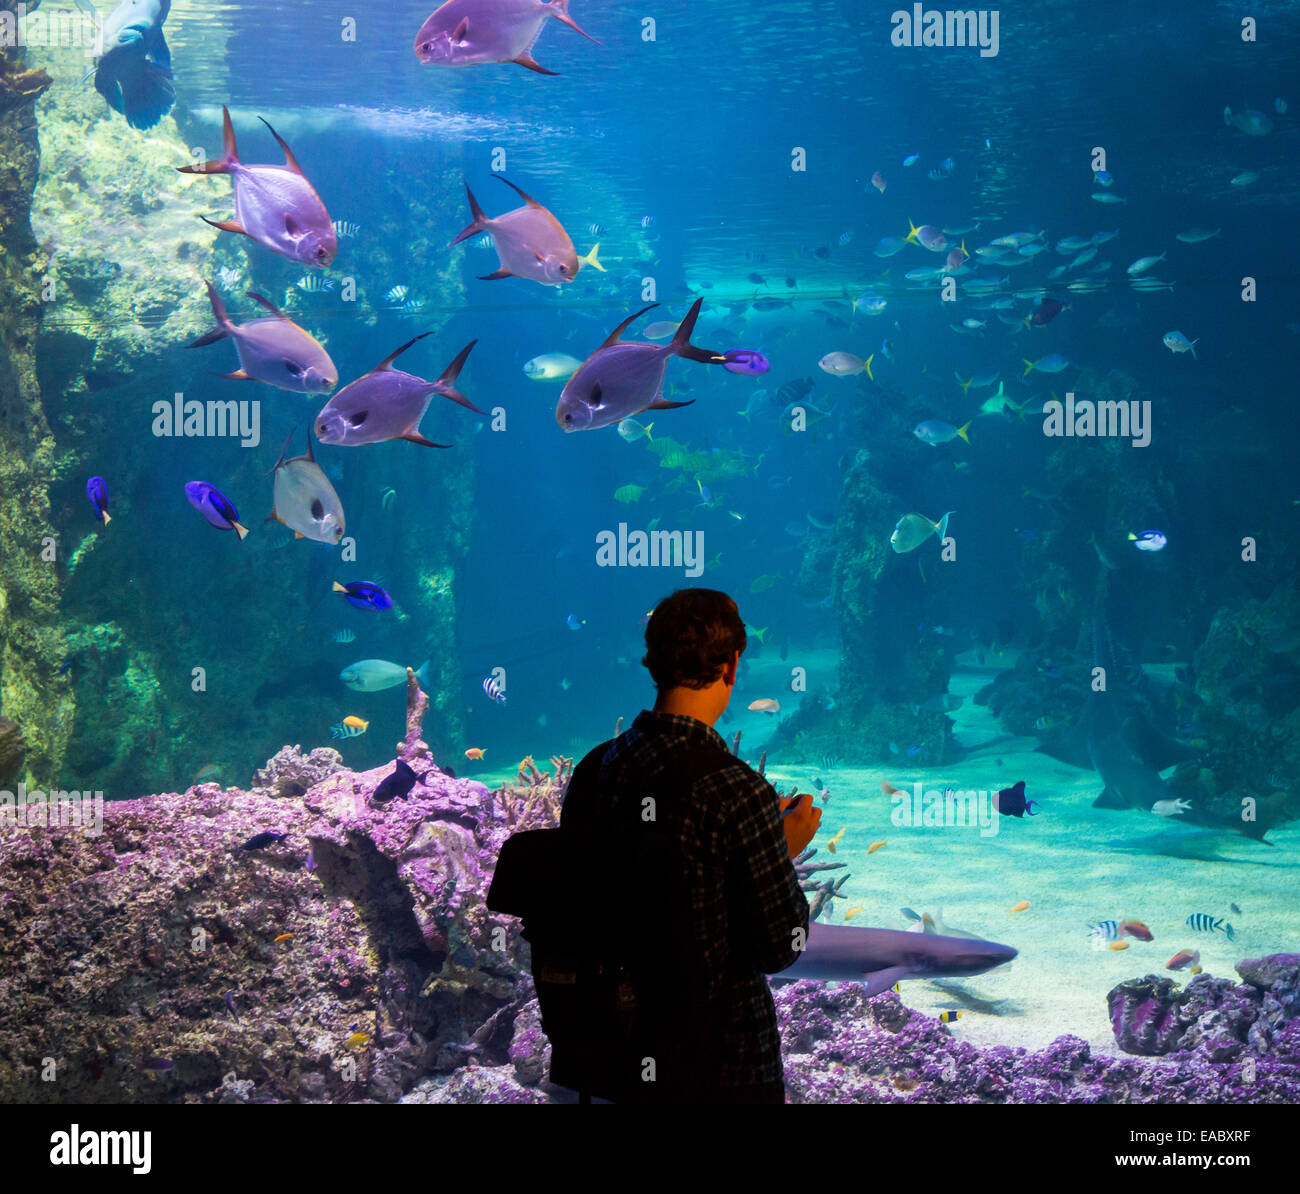 Silhouette of a person looking at the Great Barrier Reef aquarium in the Sydney Sea Life Aquarium, Darling Harbour, - Stock Image